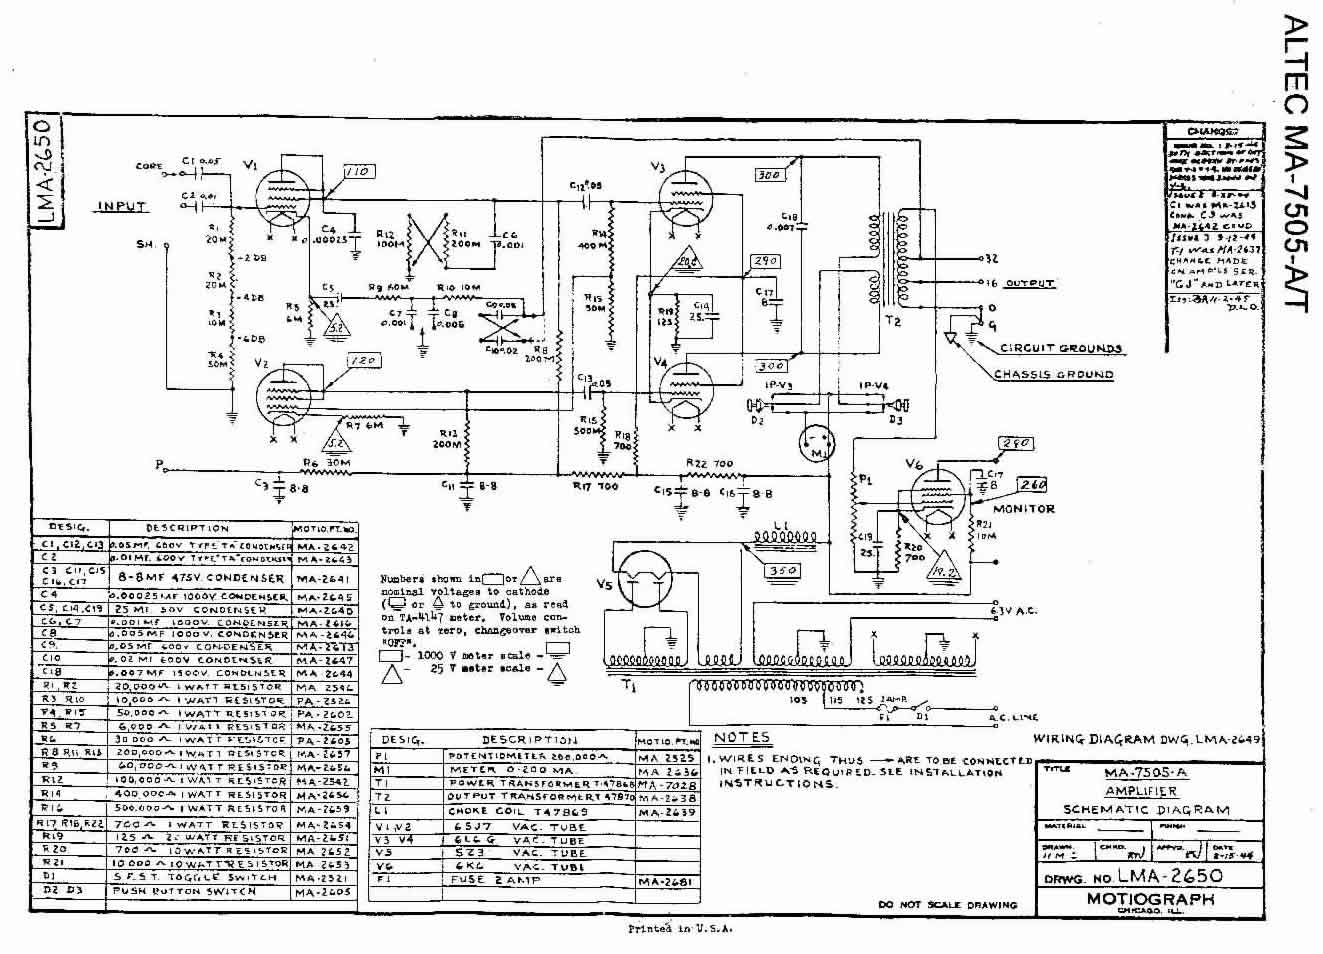 here is the wiring diagram for the altec 4722